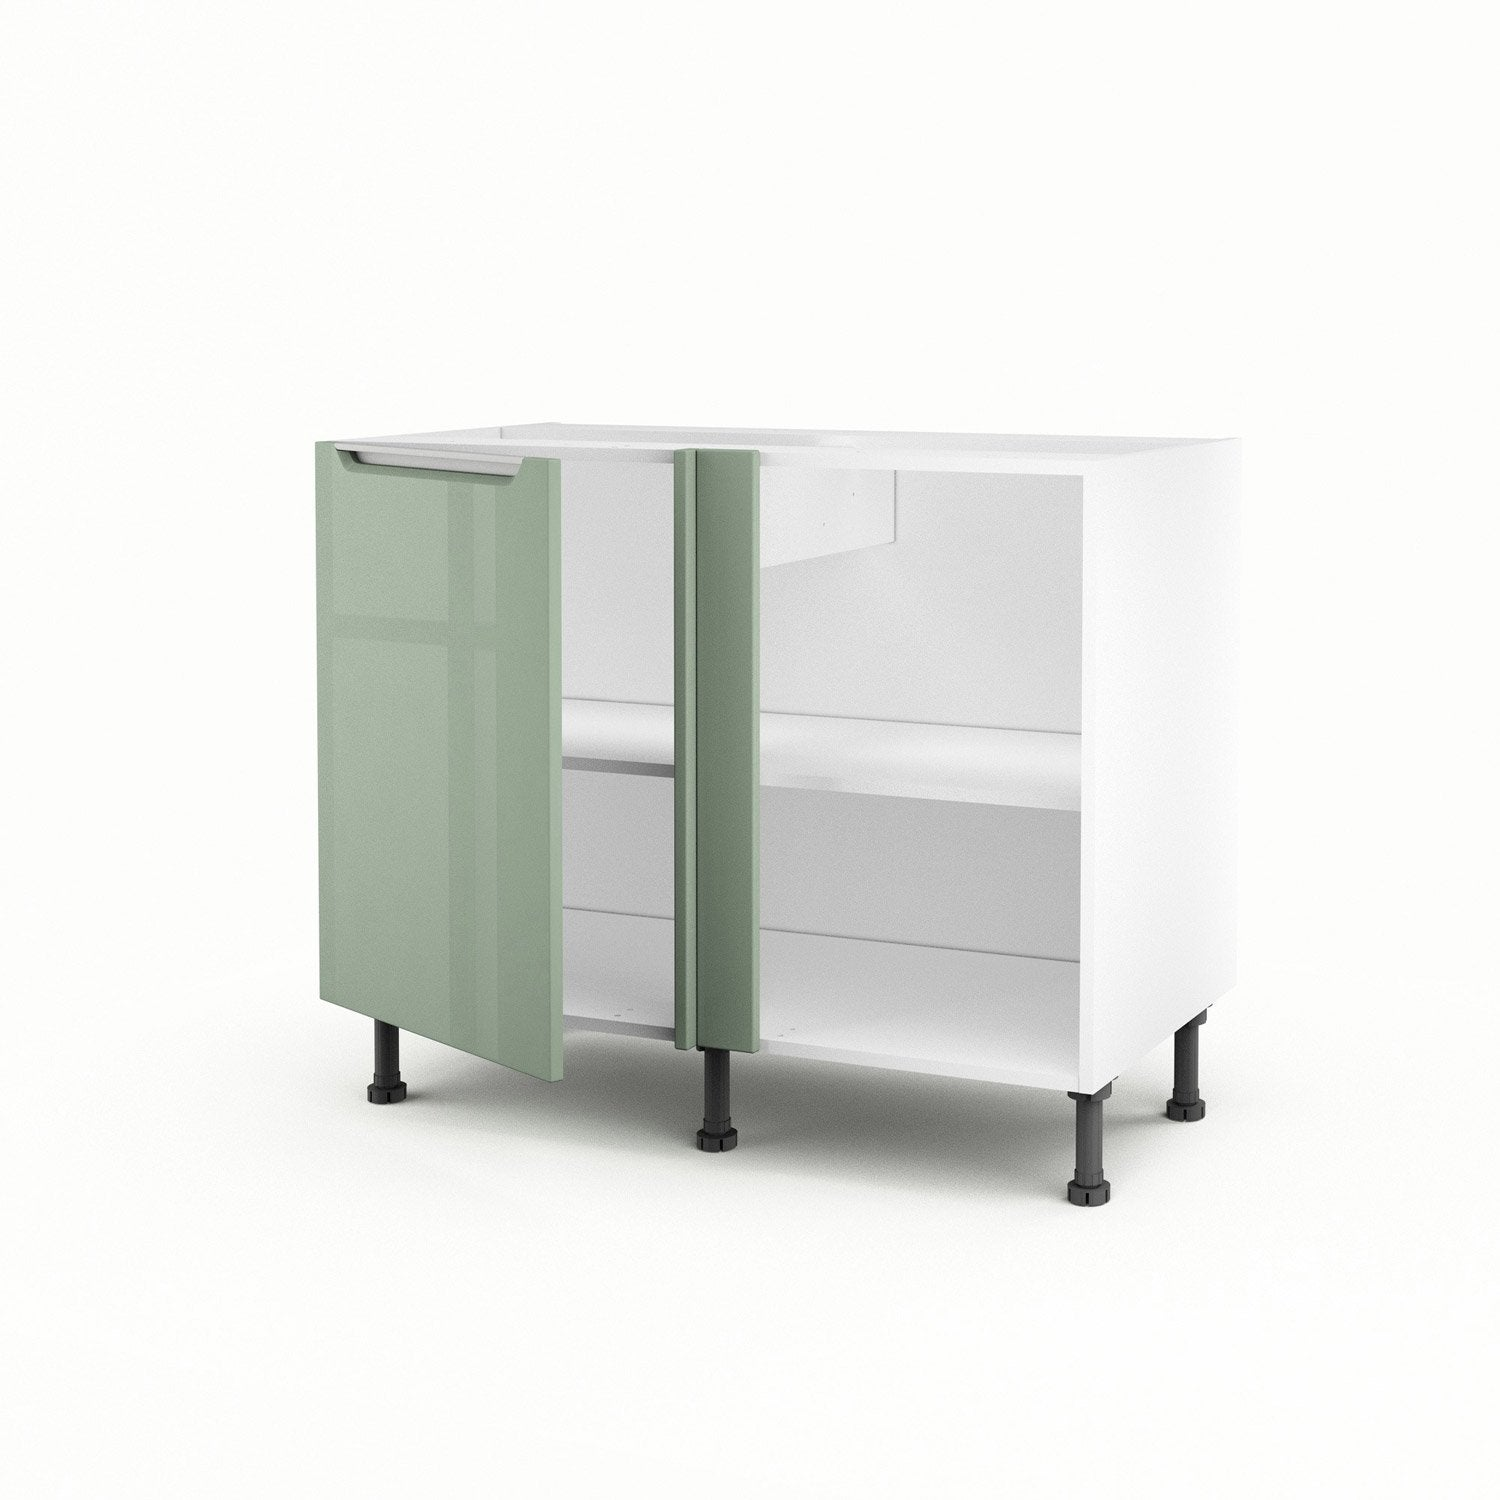 meuble de cuisine bas d 39 angle vert 1 porte milano x x cm leroy merlin. Black Bedroom Furniture Sets. Home Design Ideas